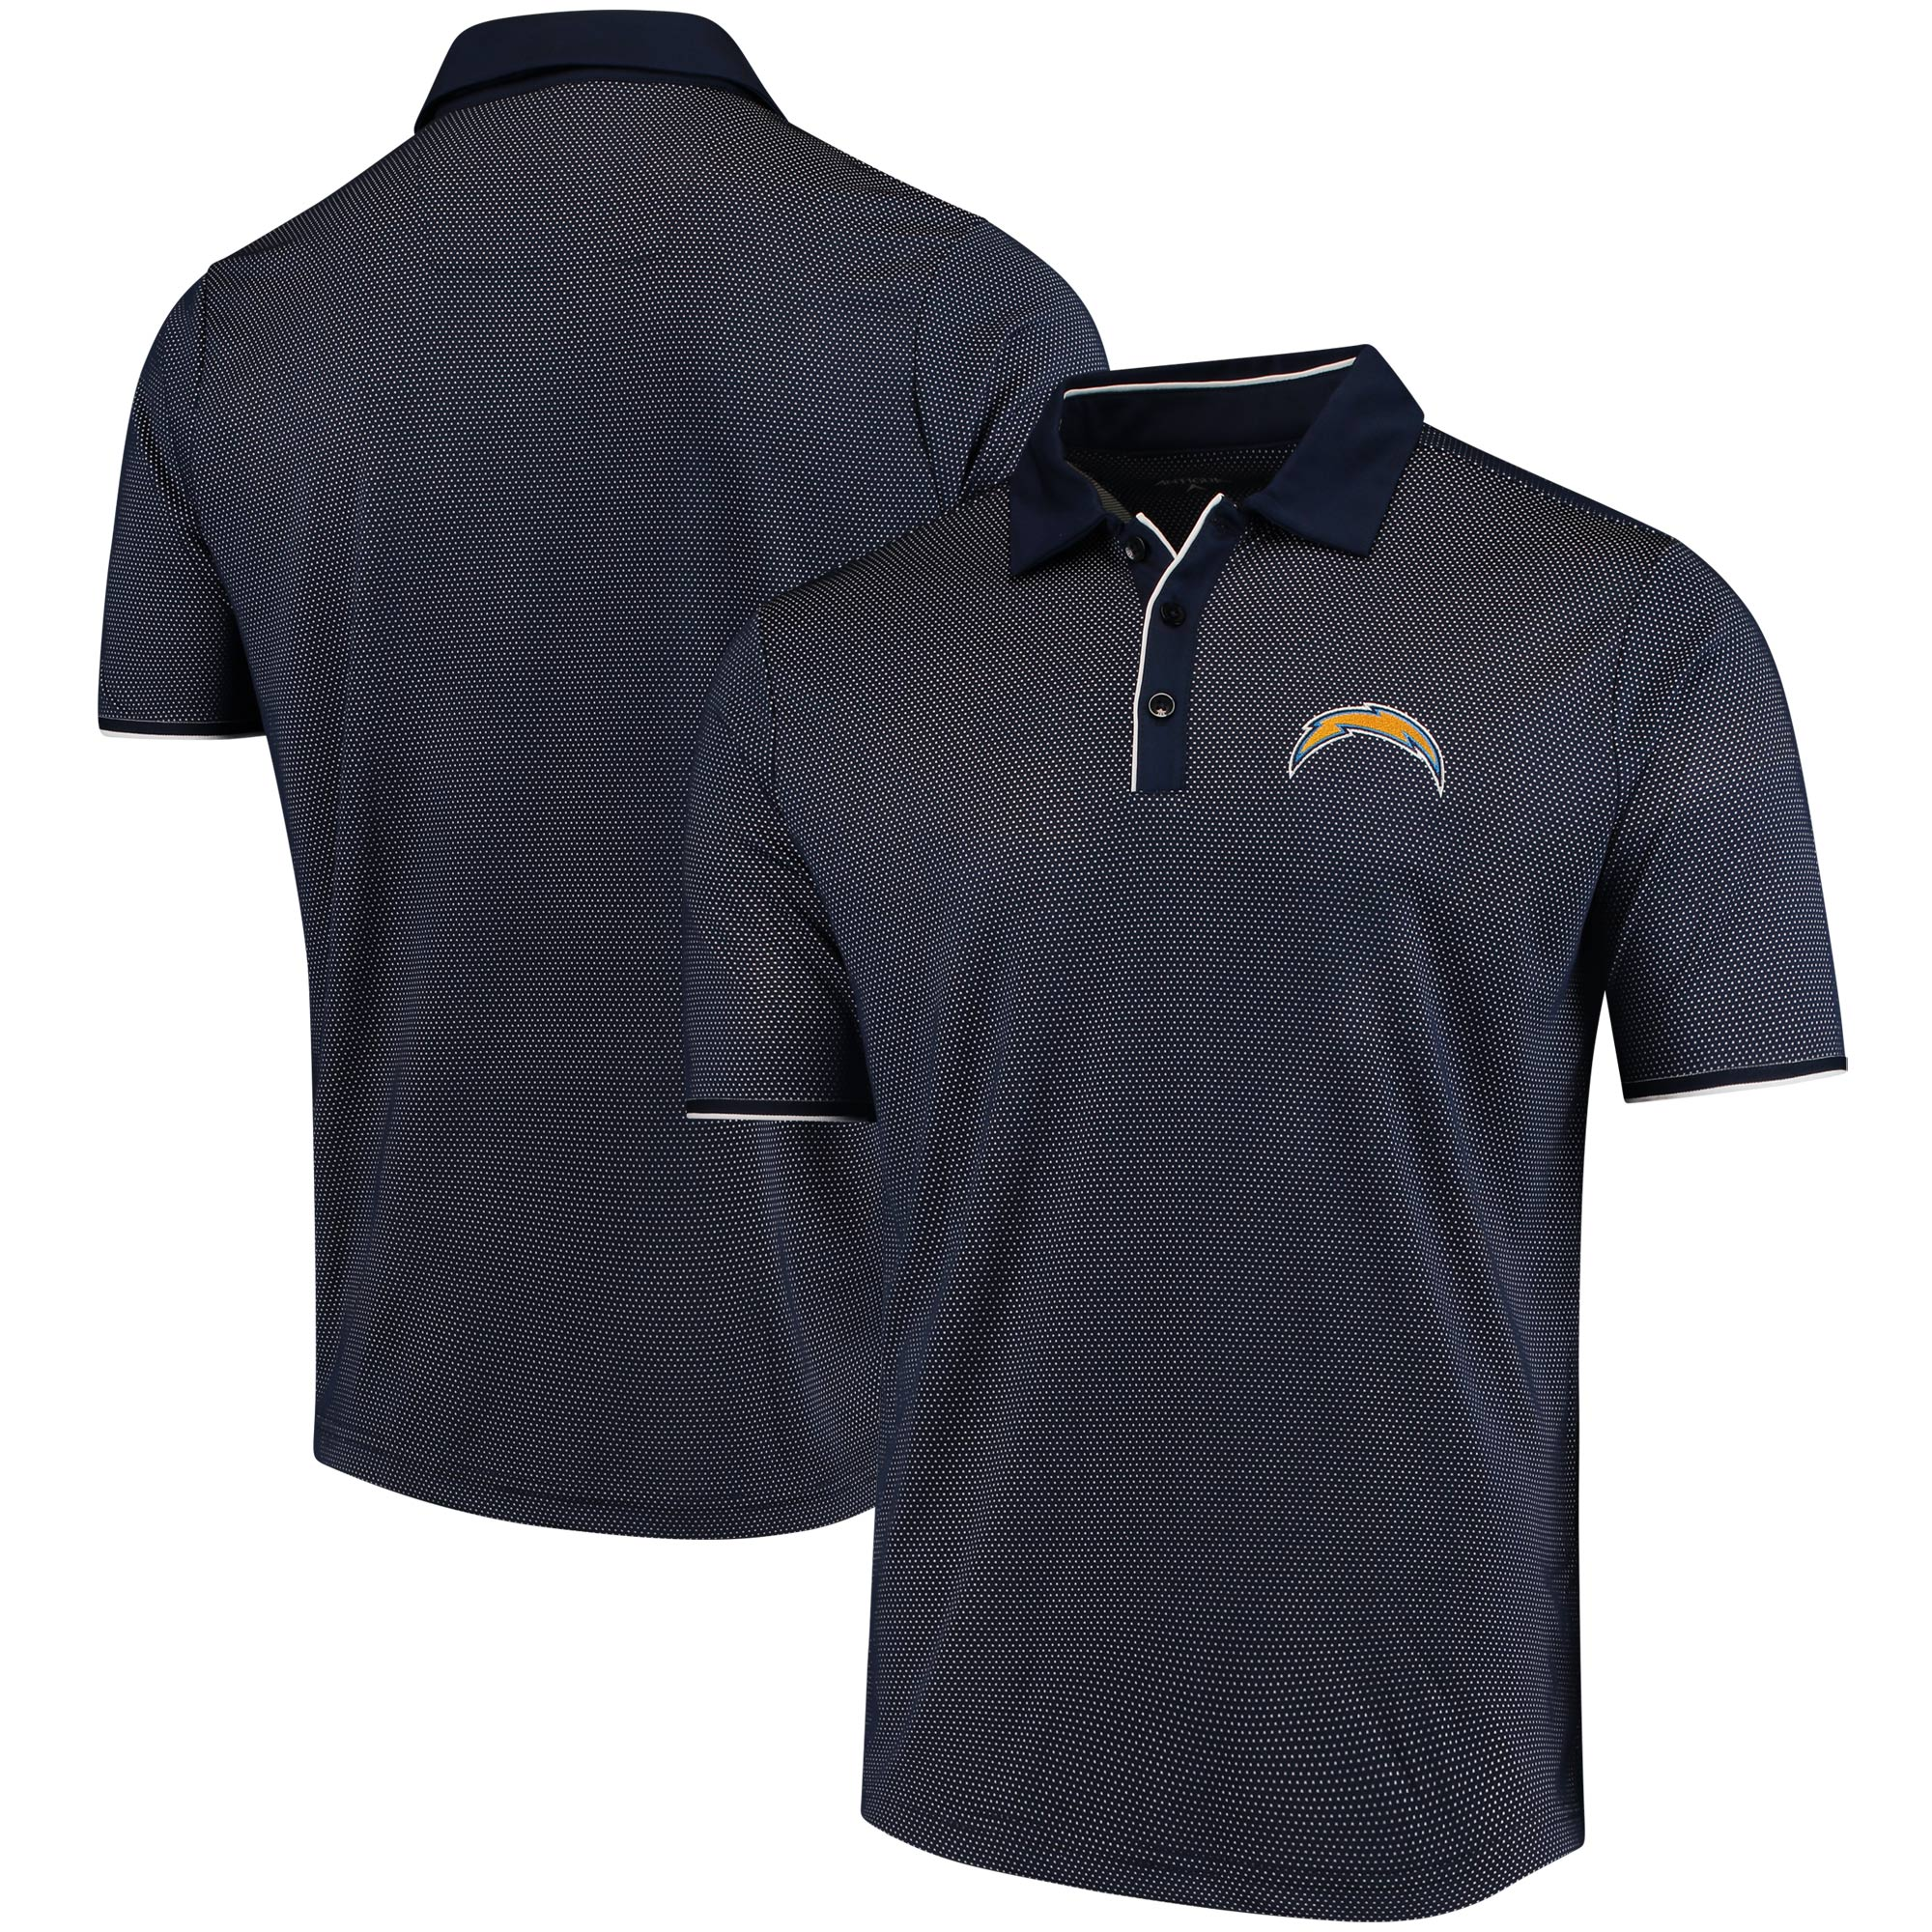 Los Angeles Chargers Antigua Draft Polo - Navy/White